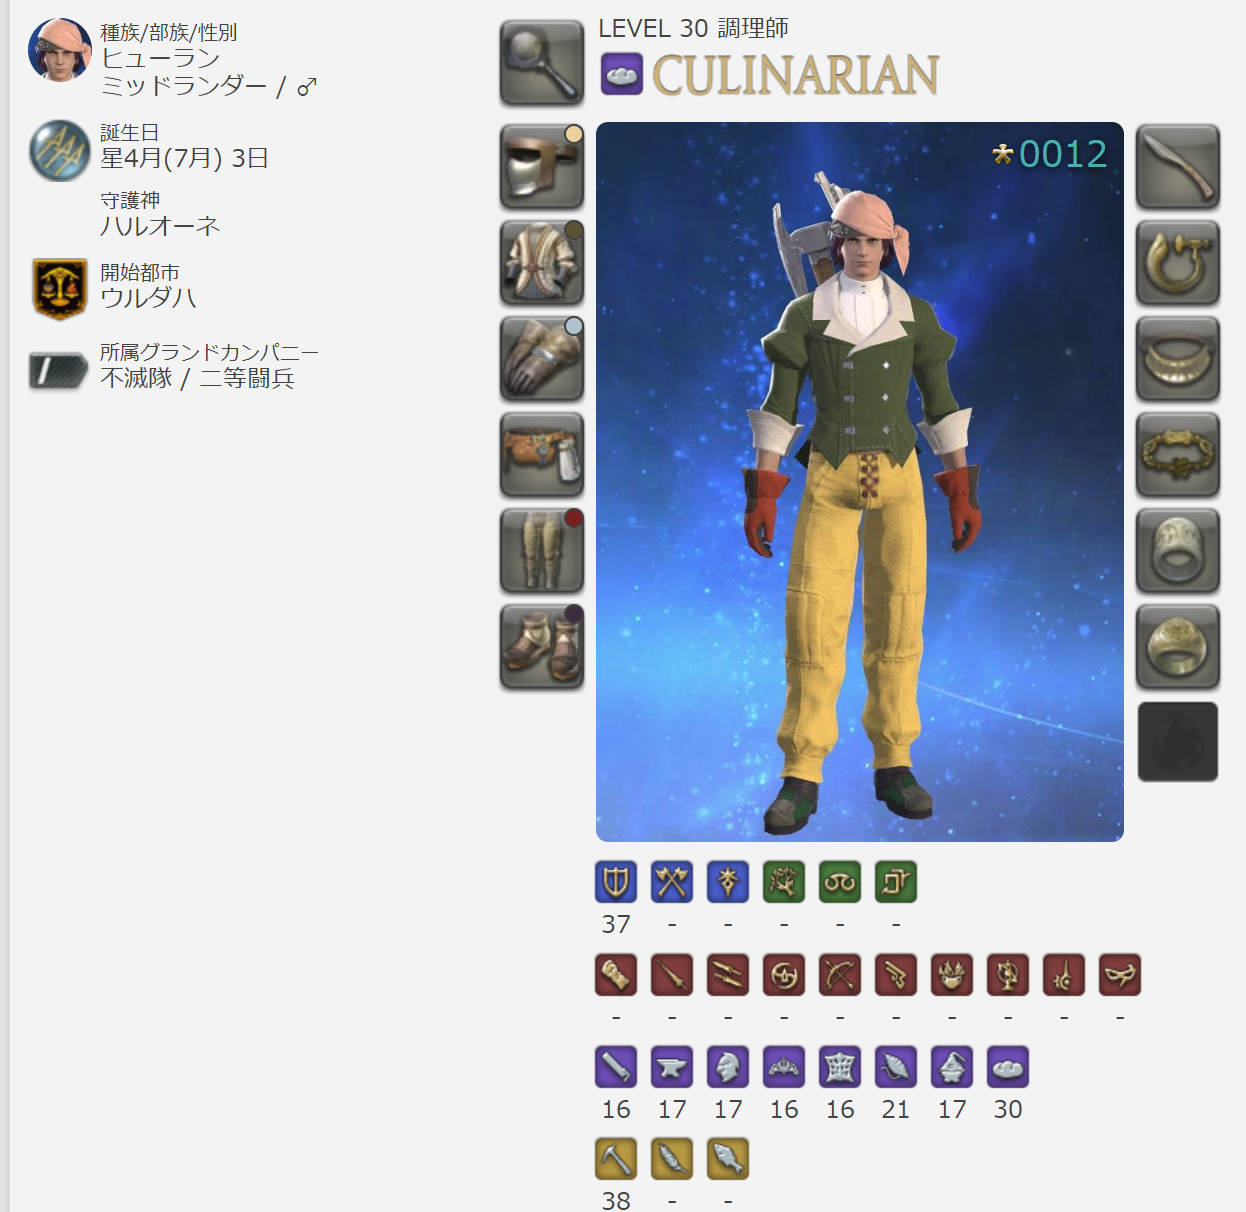 FF14_190315.png